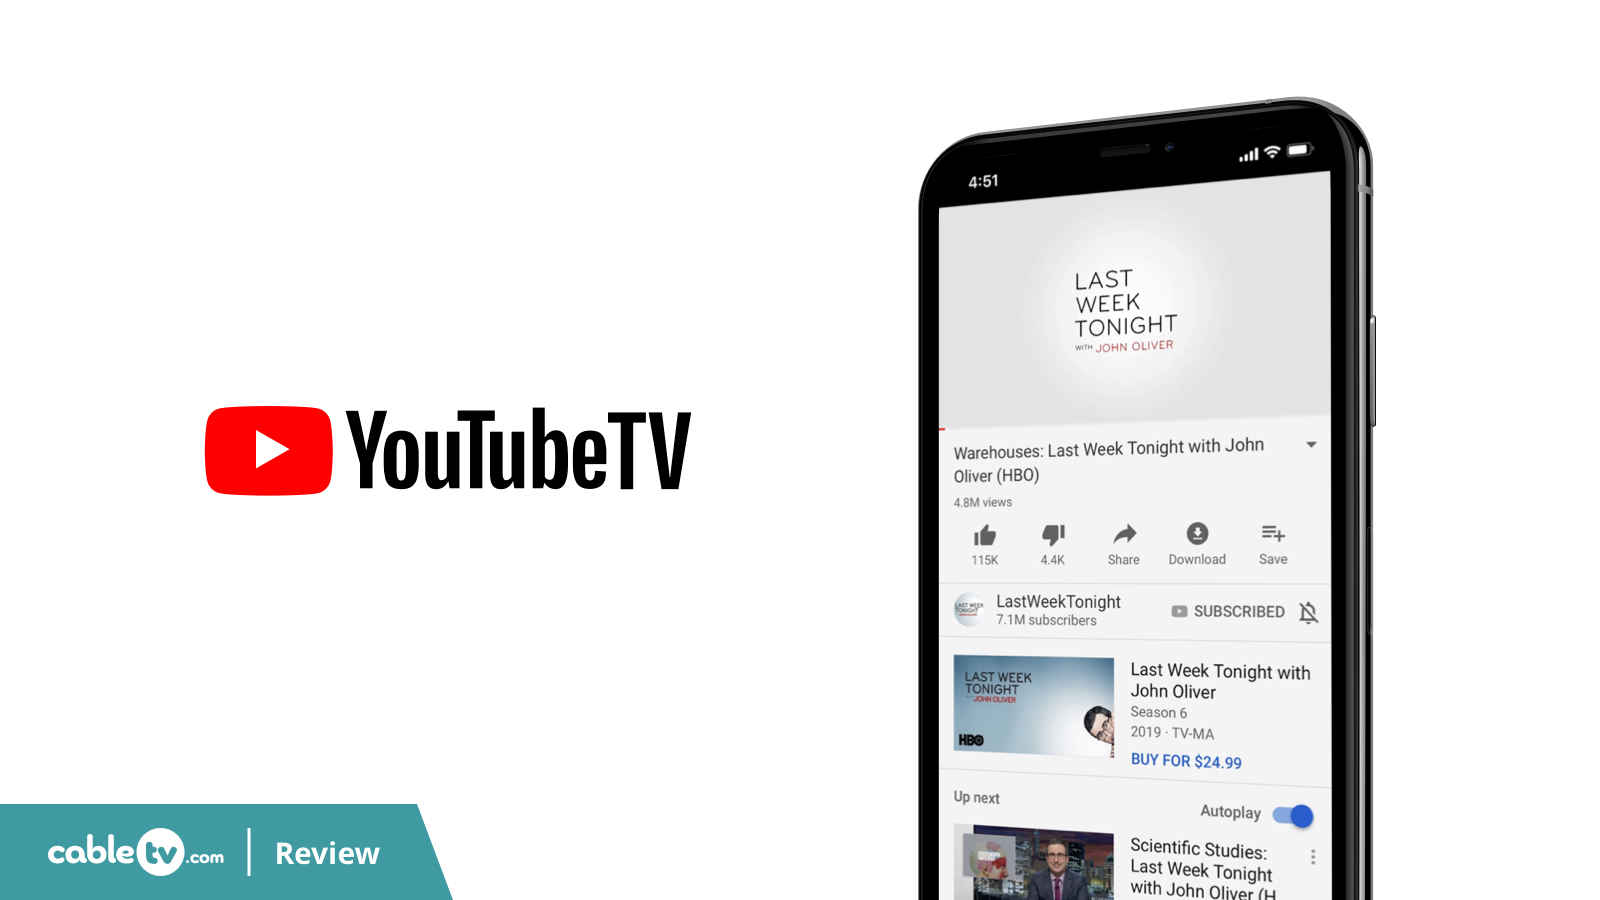 YoutubeTV Review Featured Image